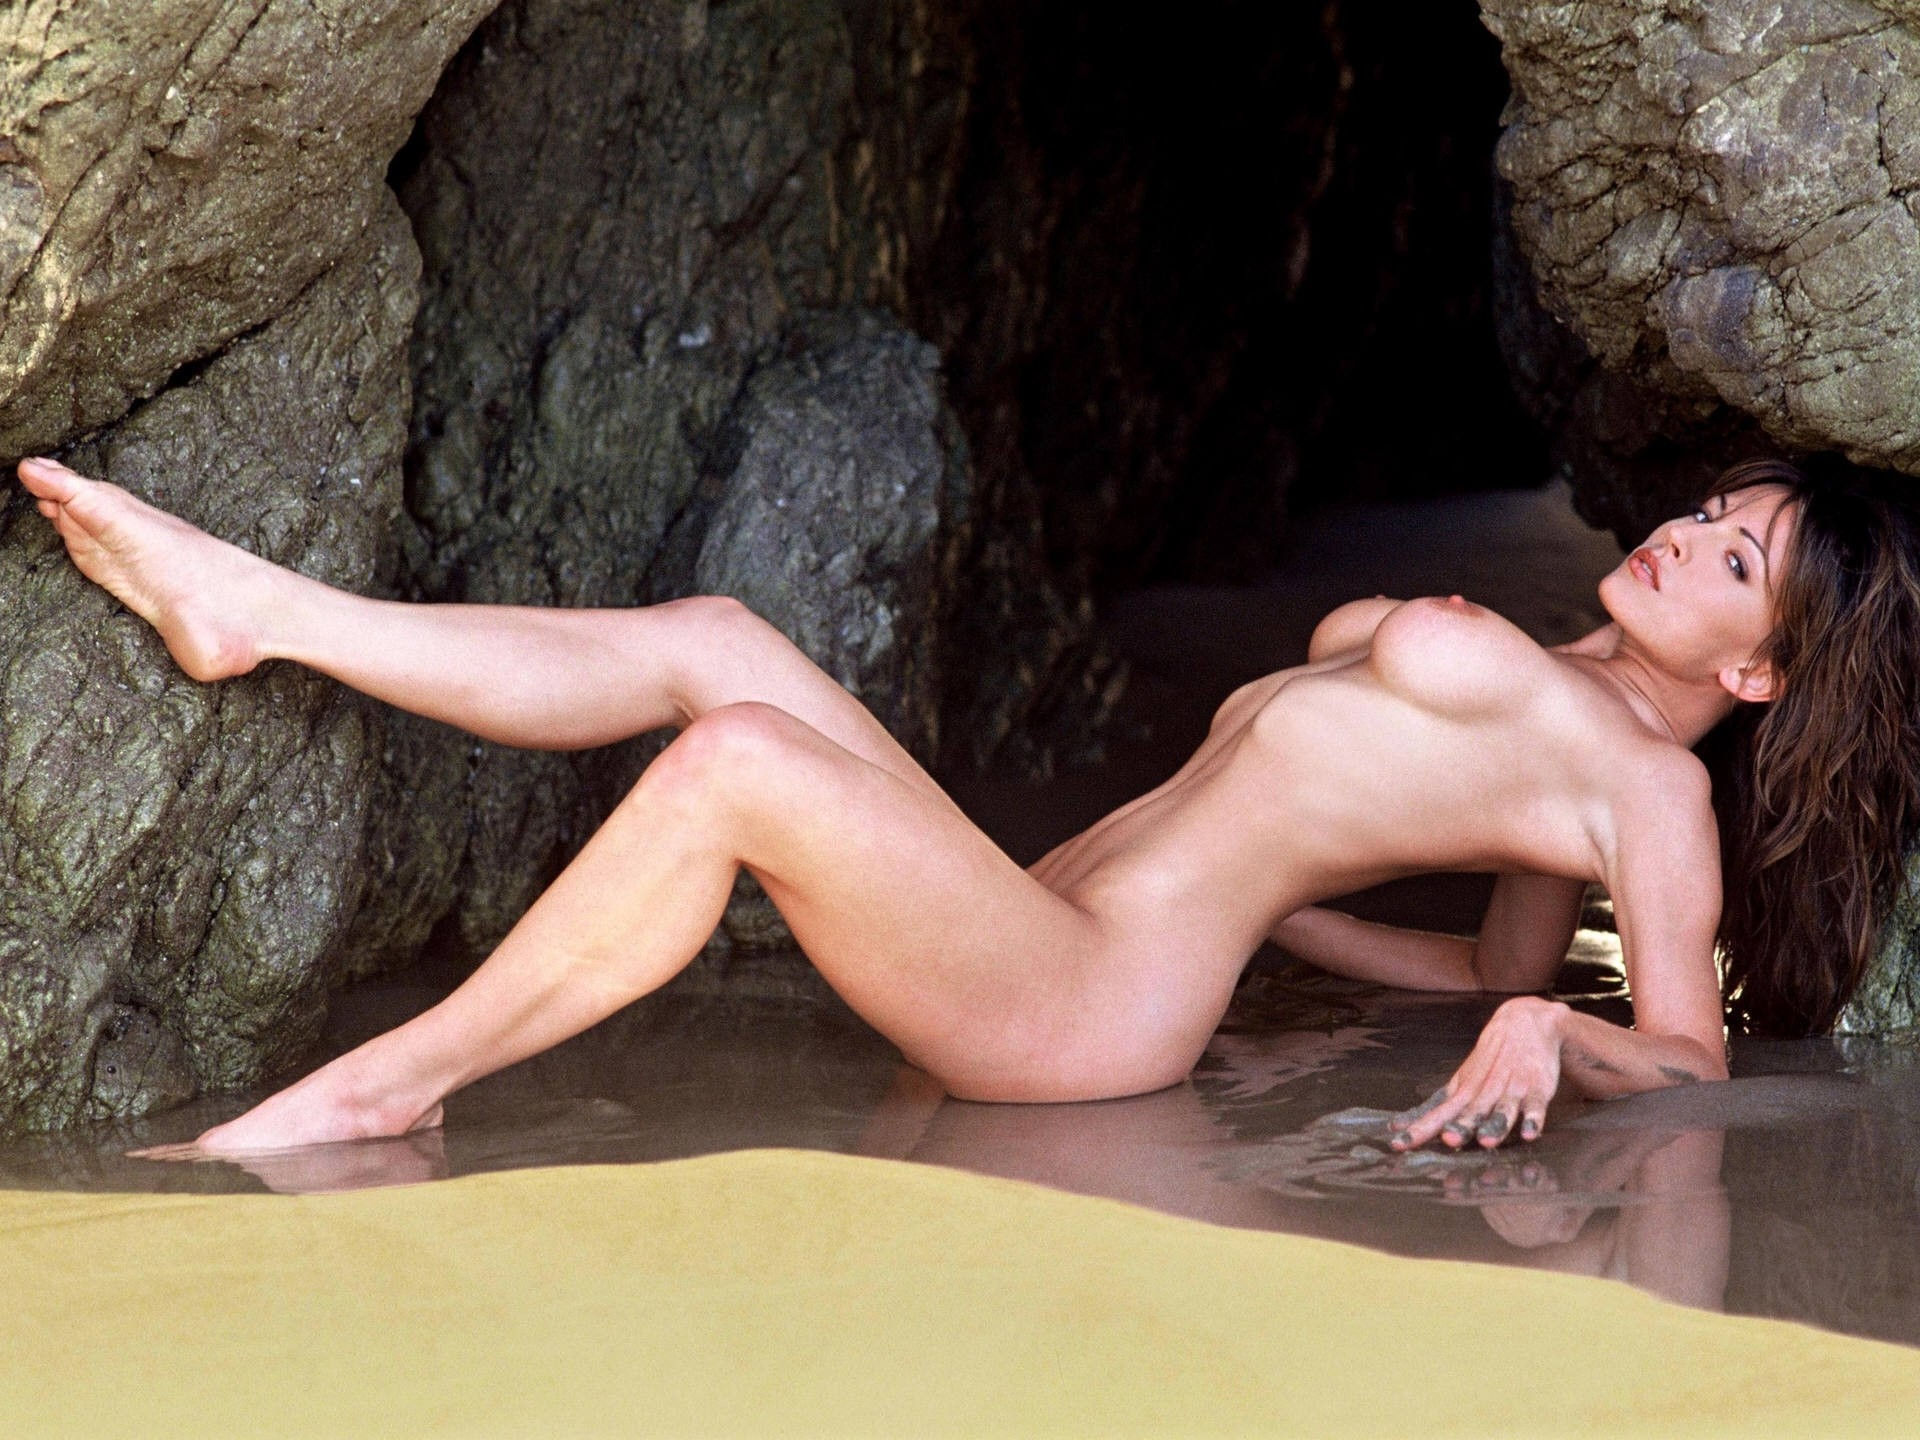 Krista allen sexy pictures, naked girl fat belly